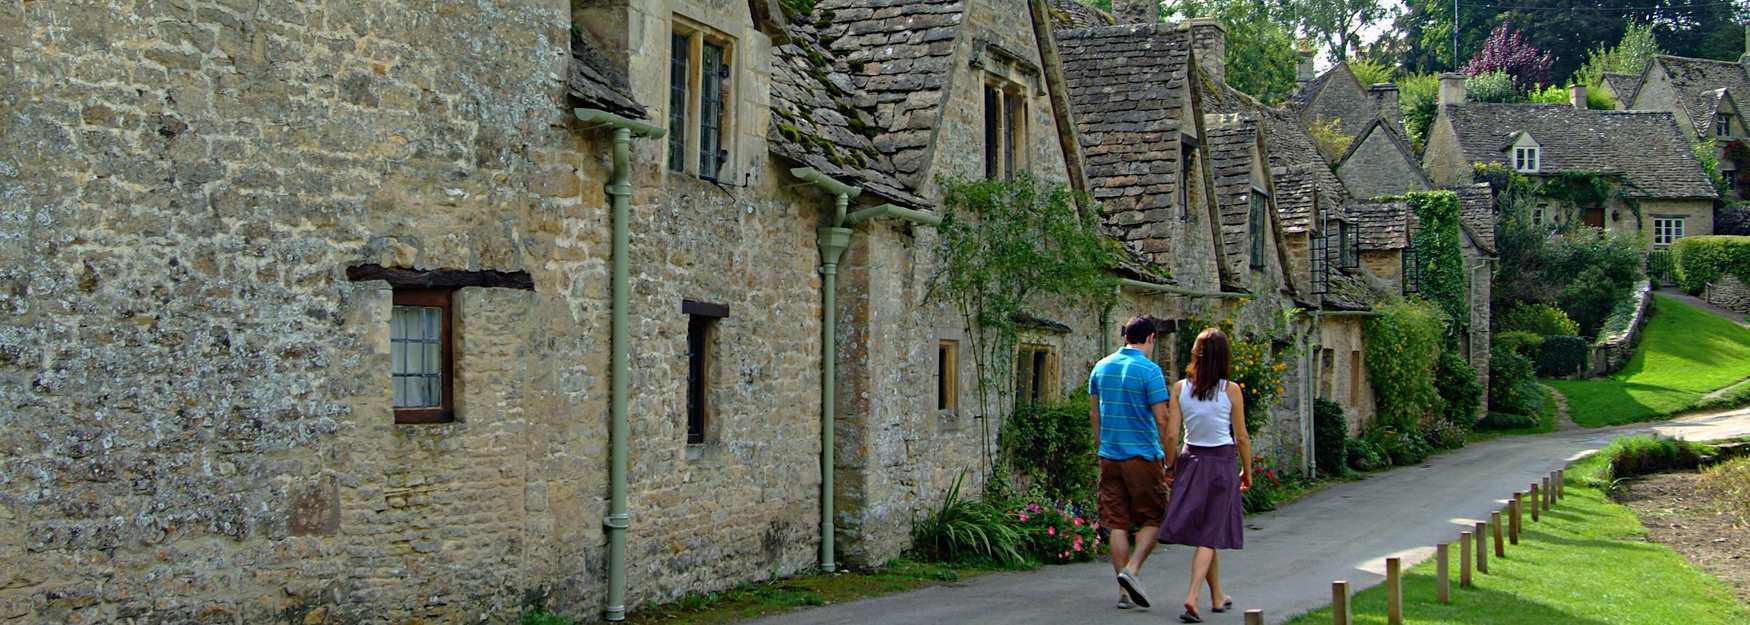 Walkers in Bibury